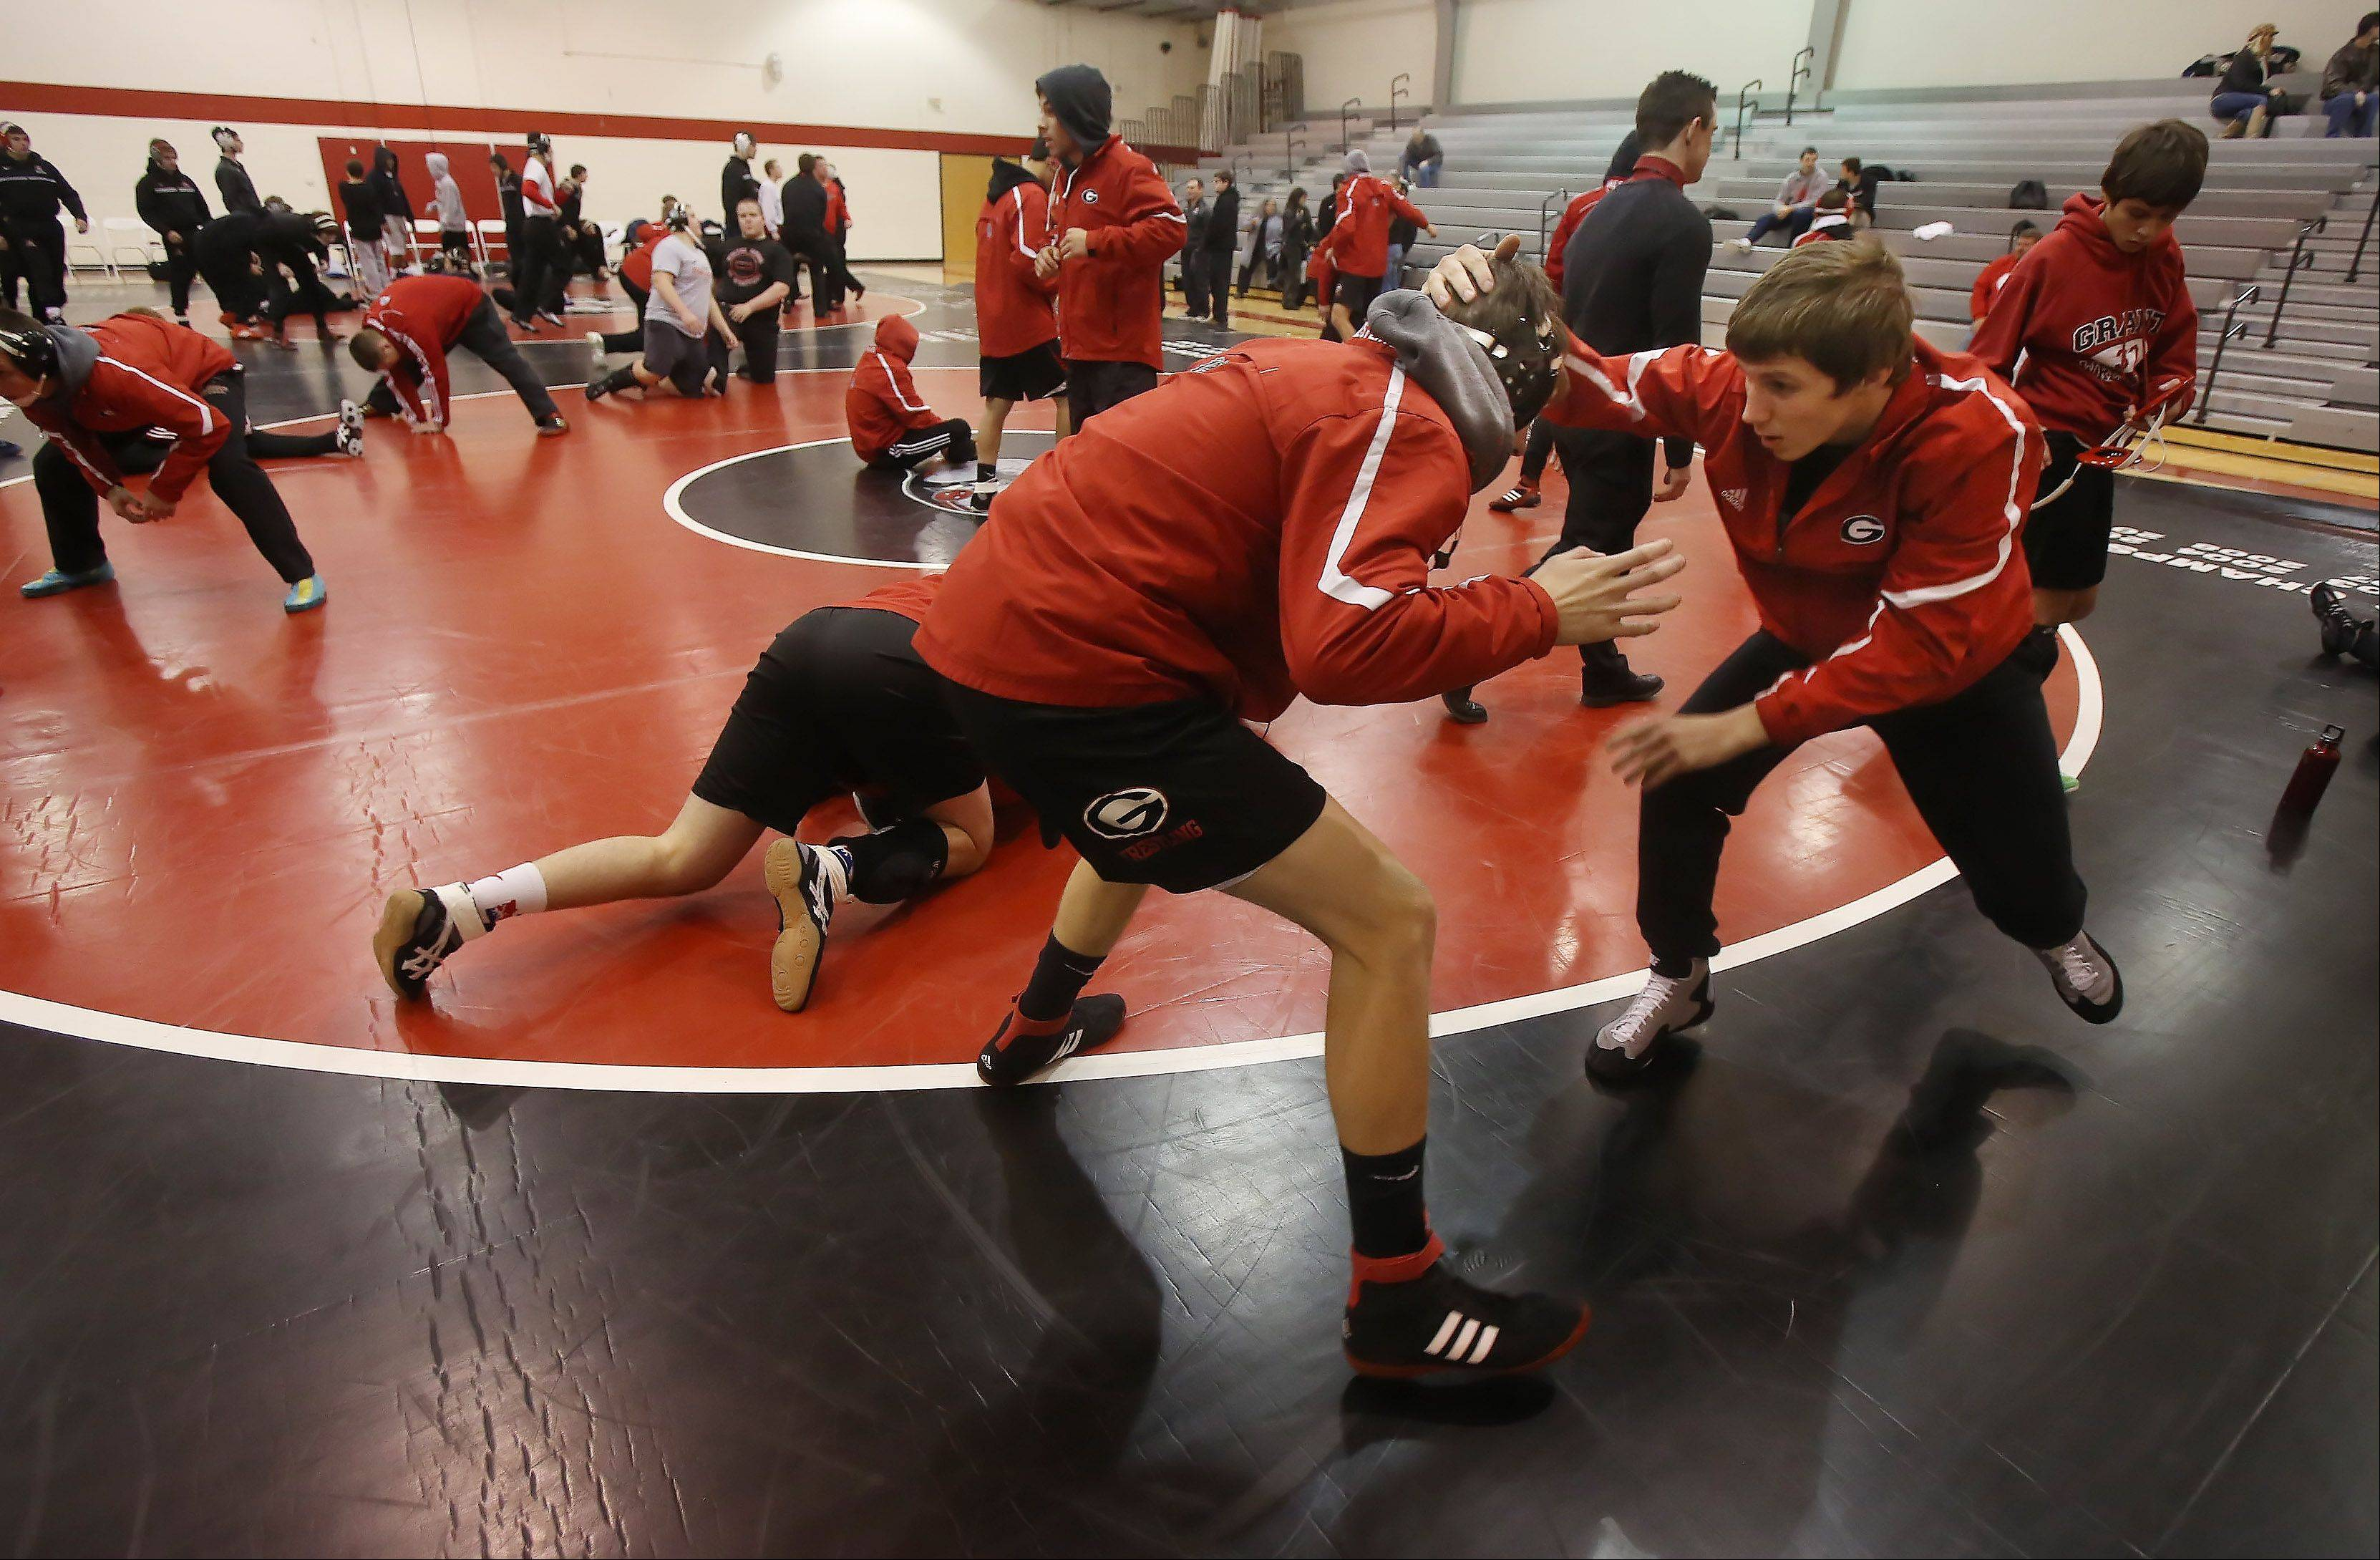 Grant Community High School wrestlers warm up before a recent home meet. Educators find value in the state now listing extracurricular activities on schools' annual report cards.